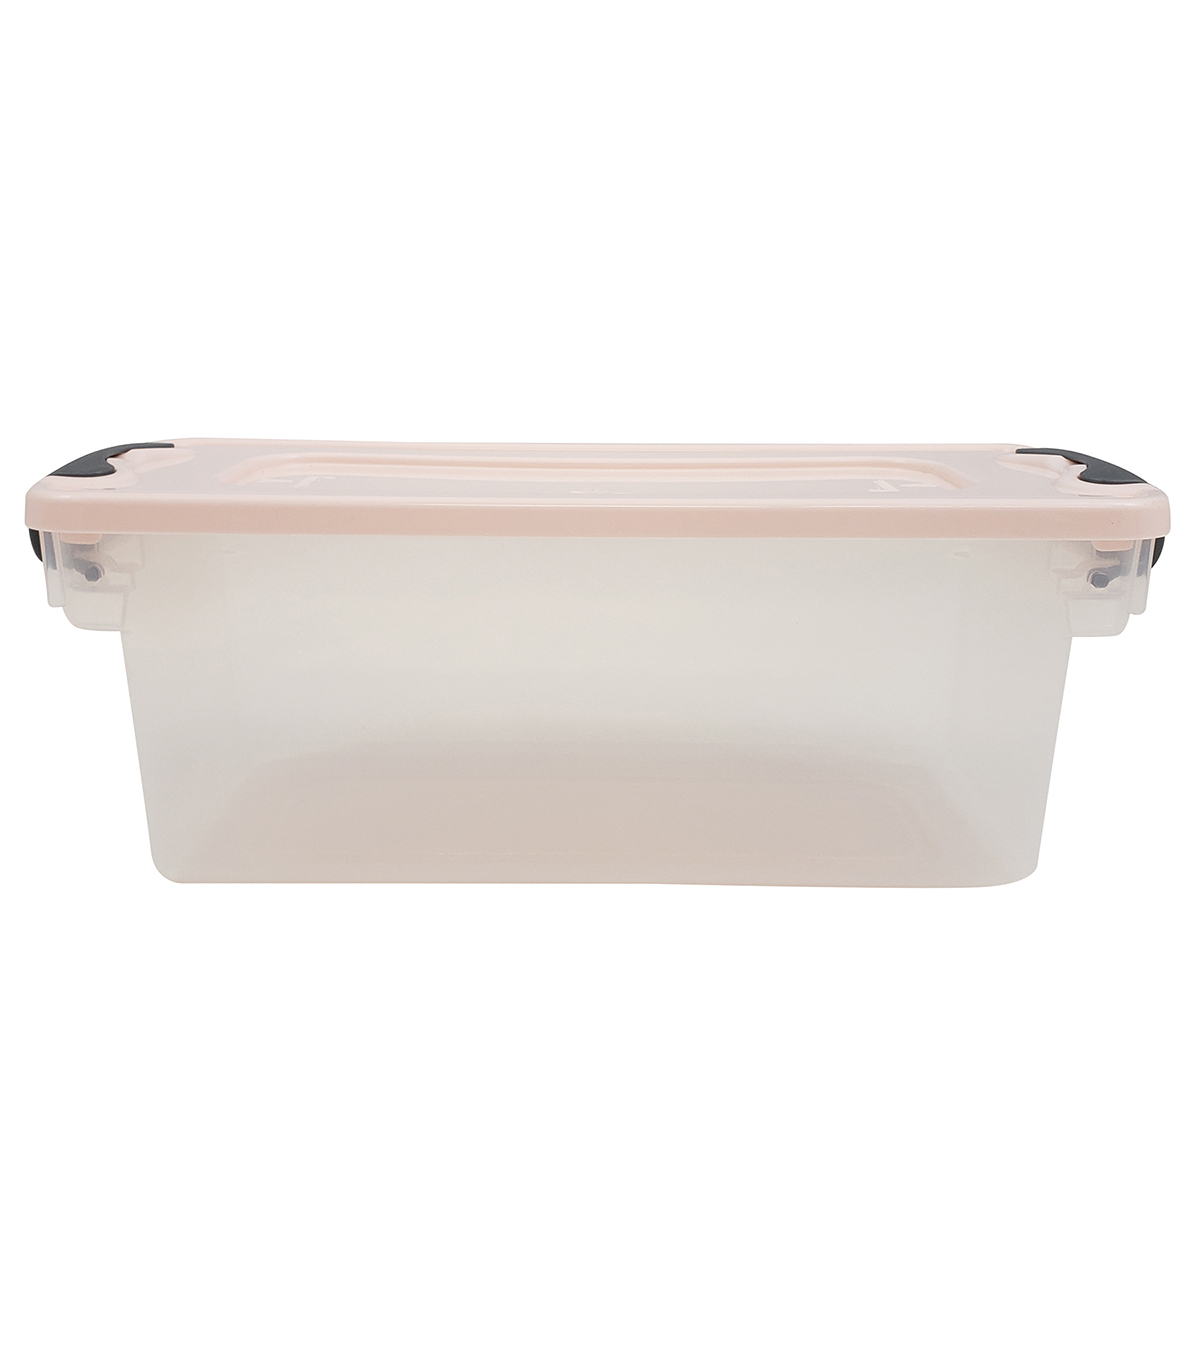 Homz 7 Quart Shoe Storage Container with Clear Base & Pearl Lid